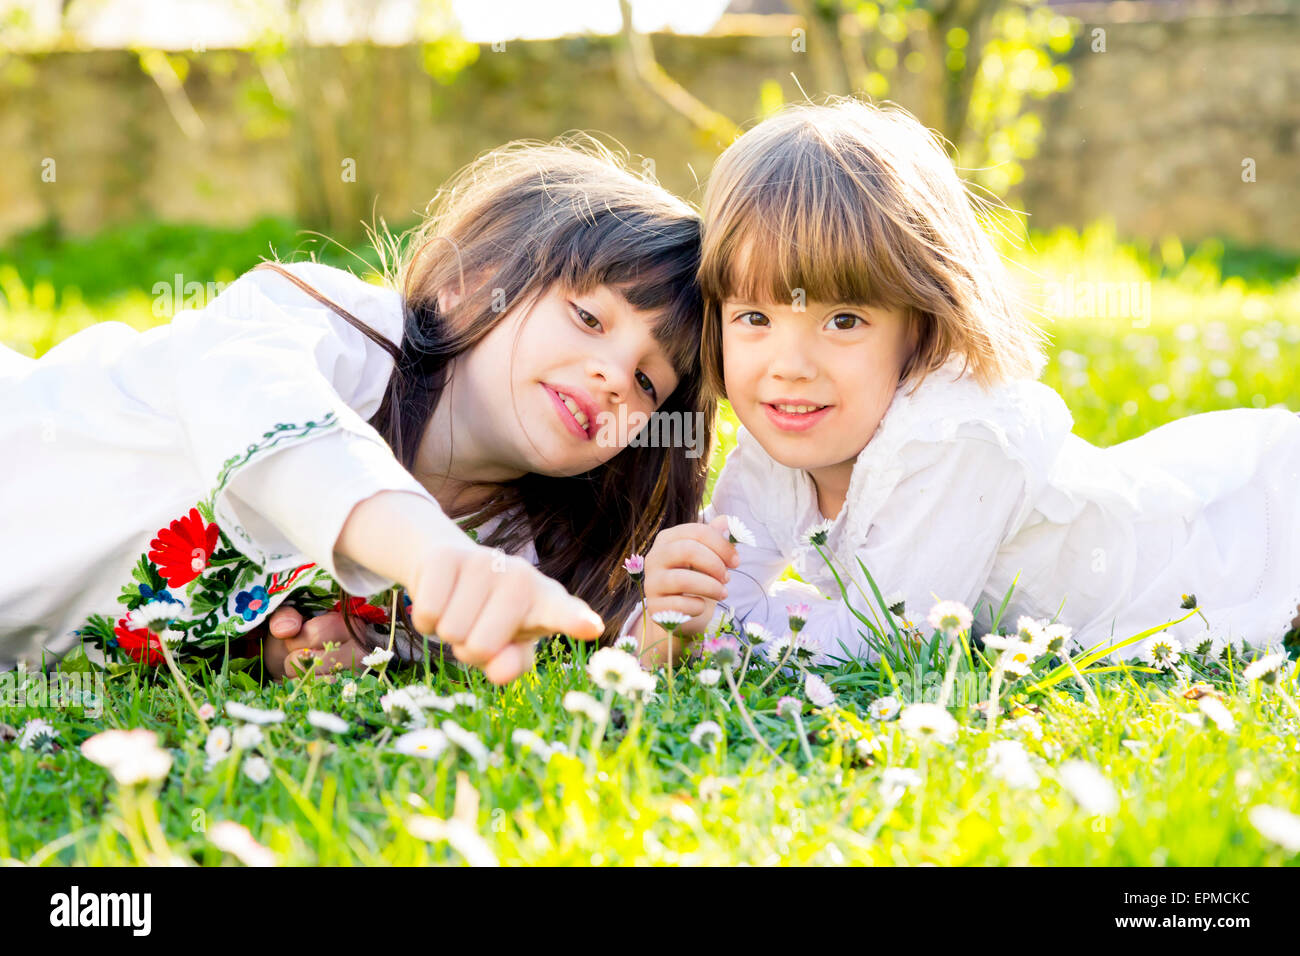 Two sisters lying together on a meadow in the garden - Stock Image